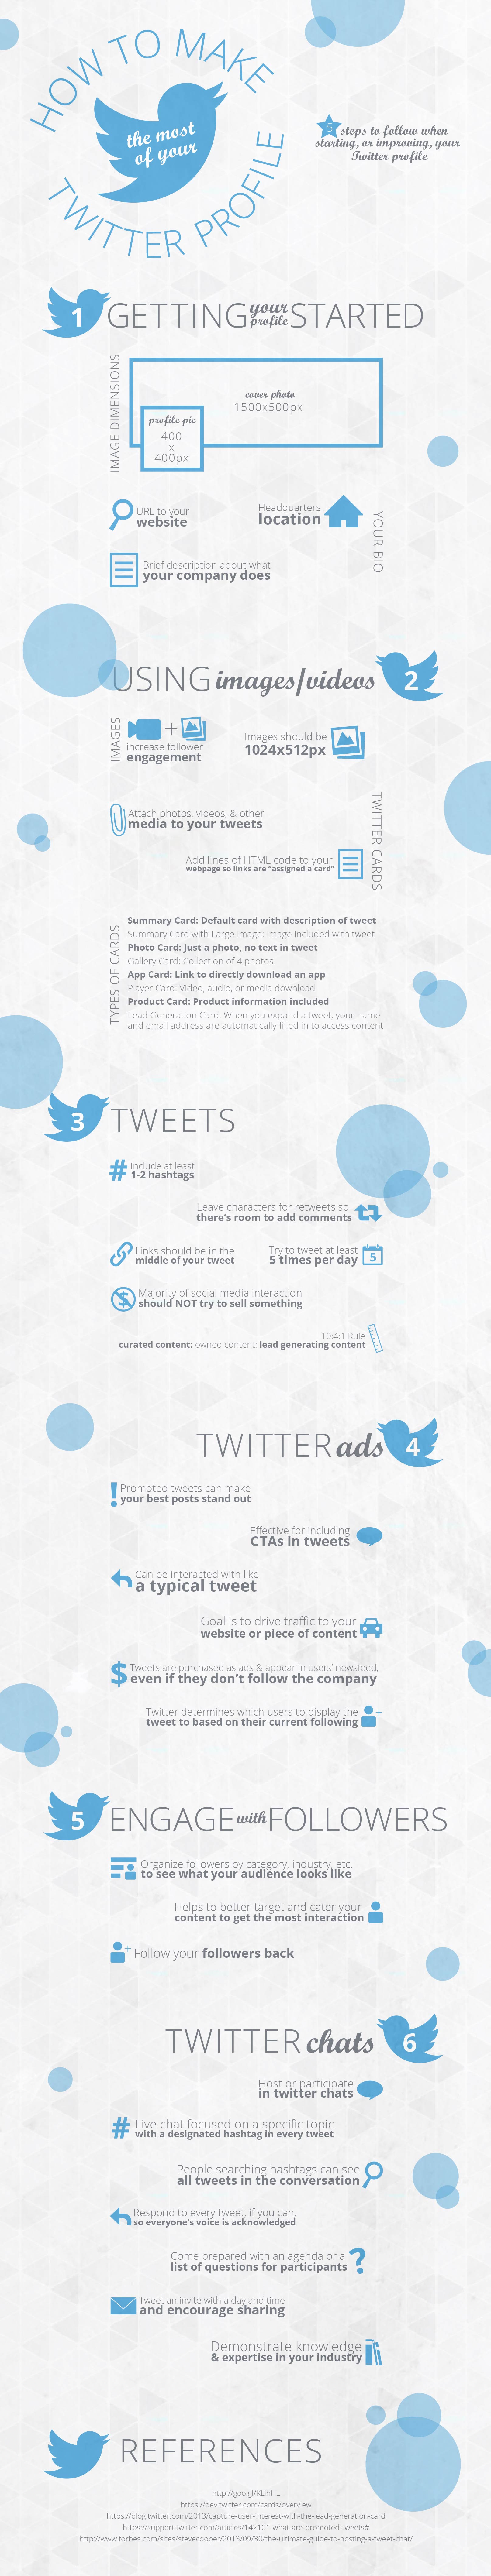 how-to-make-the-most-of-your-twitter-profile_55255c3d1a4b9-1